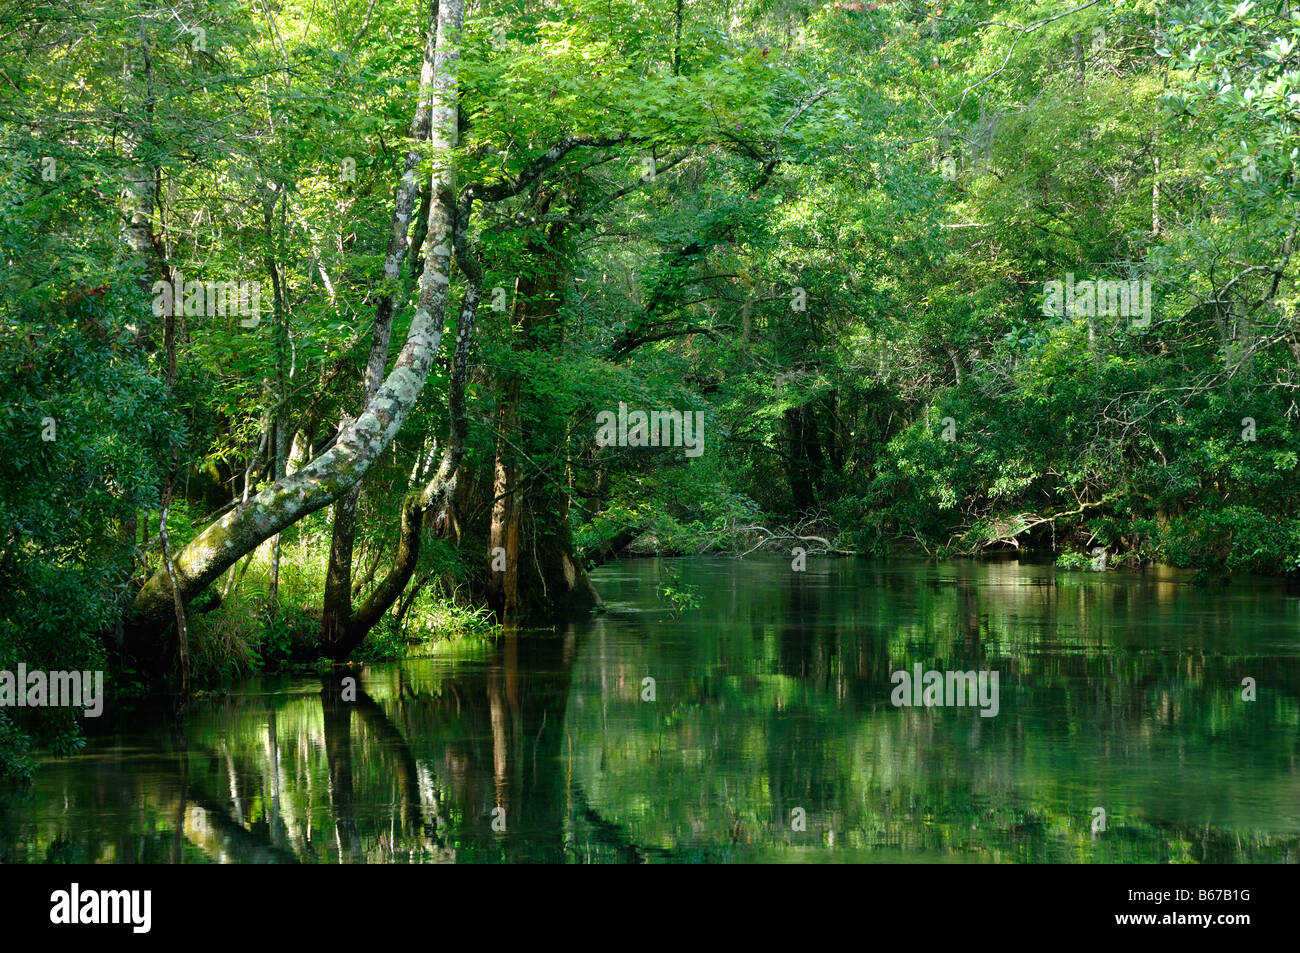 St Mark s river Florida - Stock Image